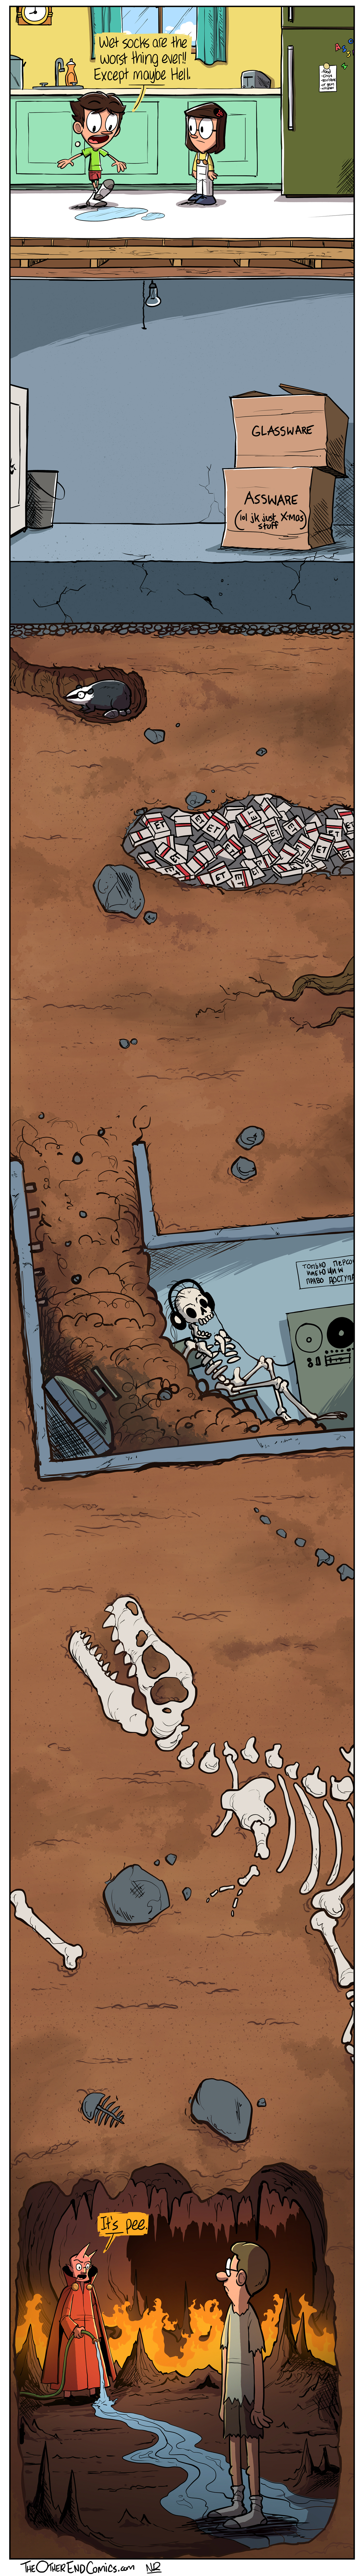 The original concept for this comic was quite a bit darker. It didn't have anything to do with Hell, but the socks were getting wet from blood.